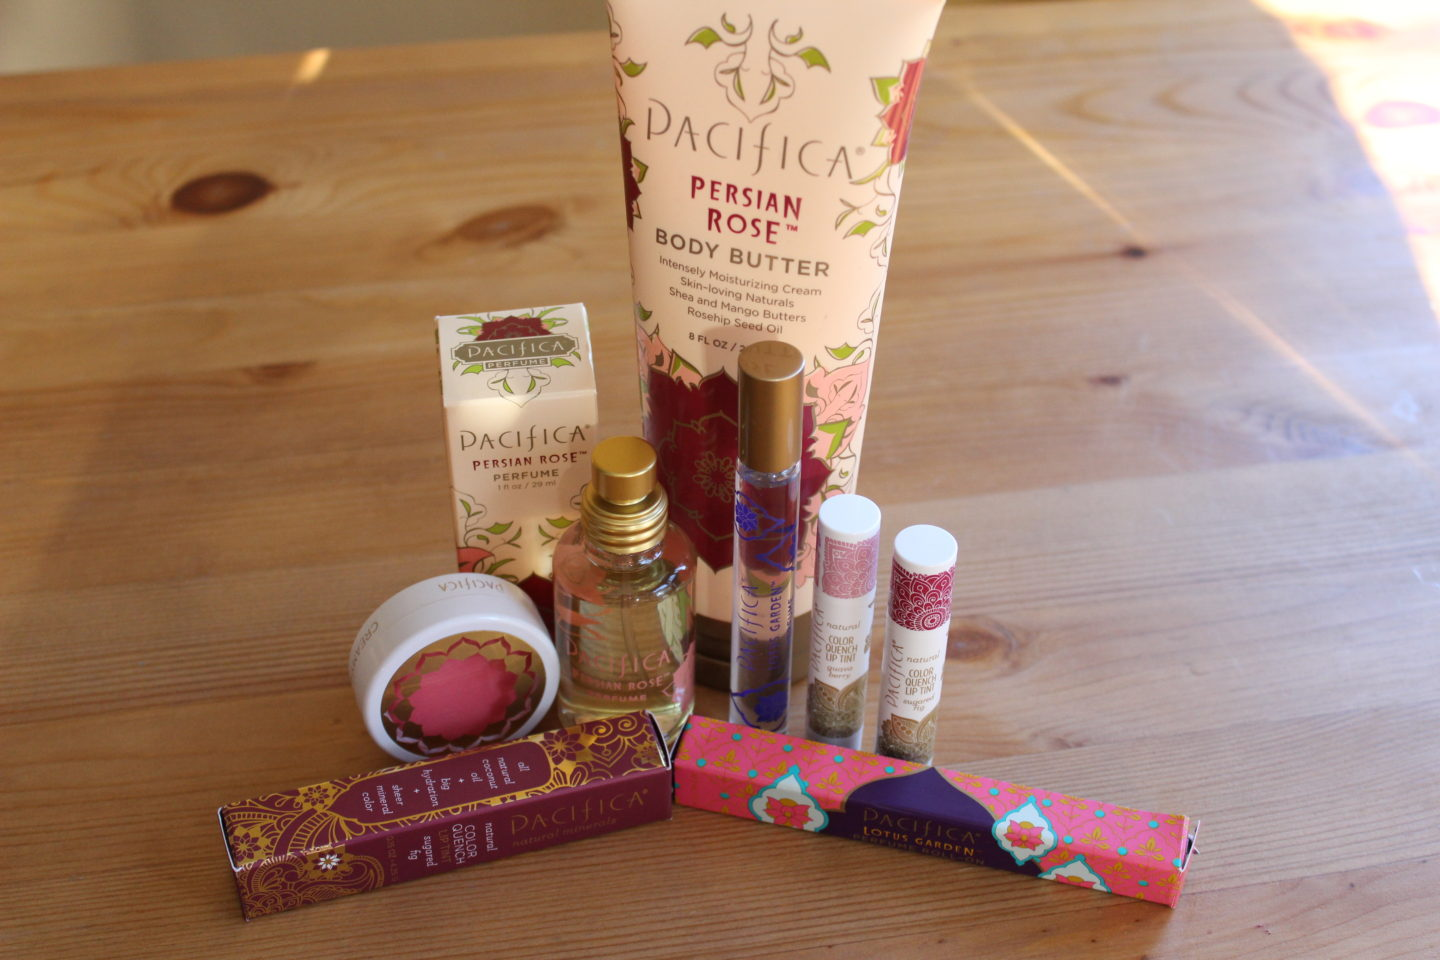 Pacifica Natural Skincare & Fragrance Review | The Dressy Chick